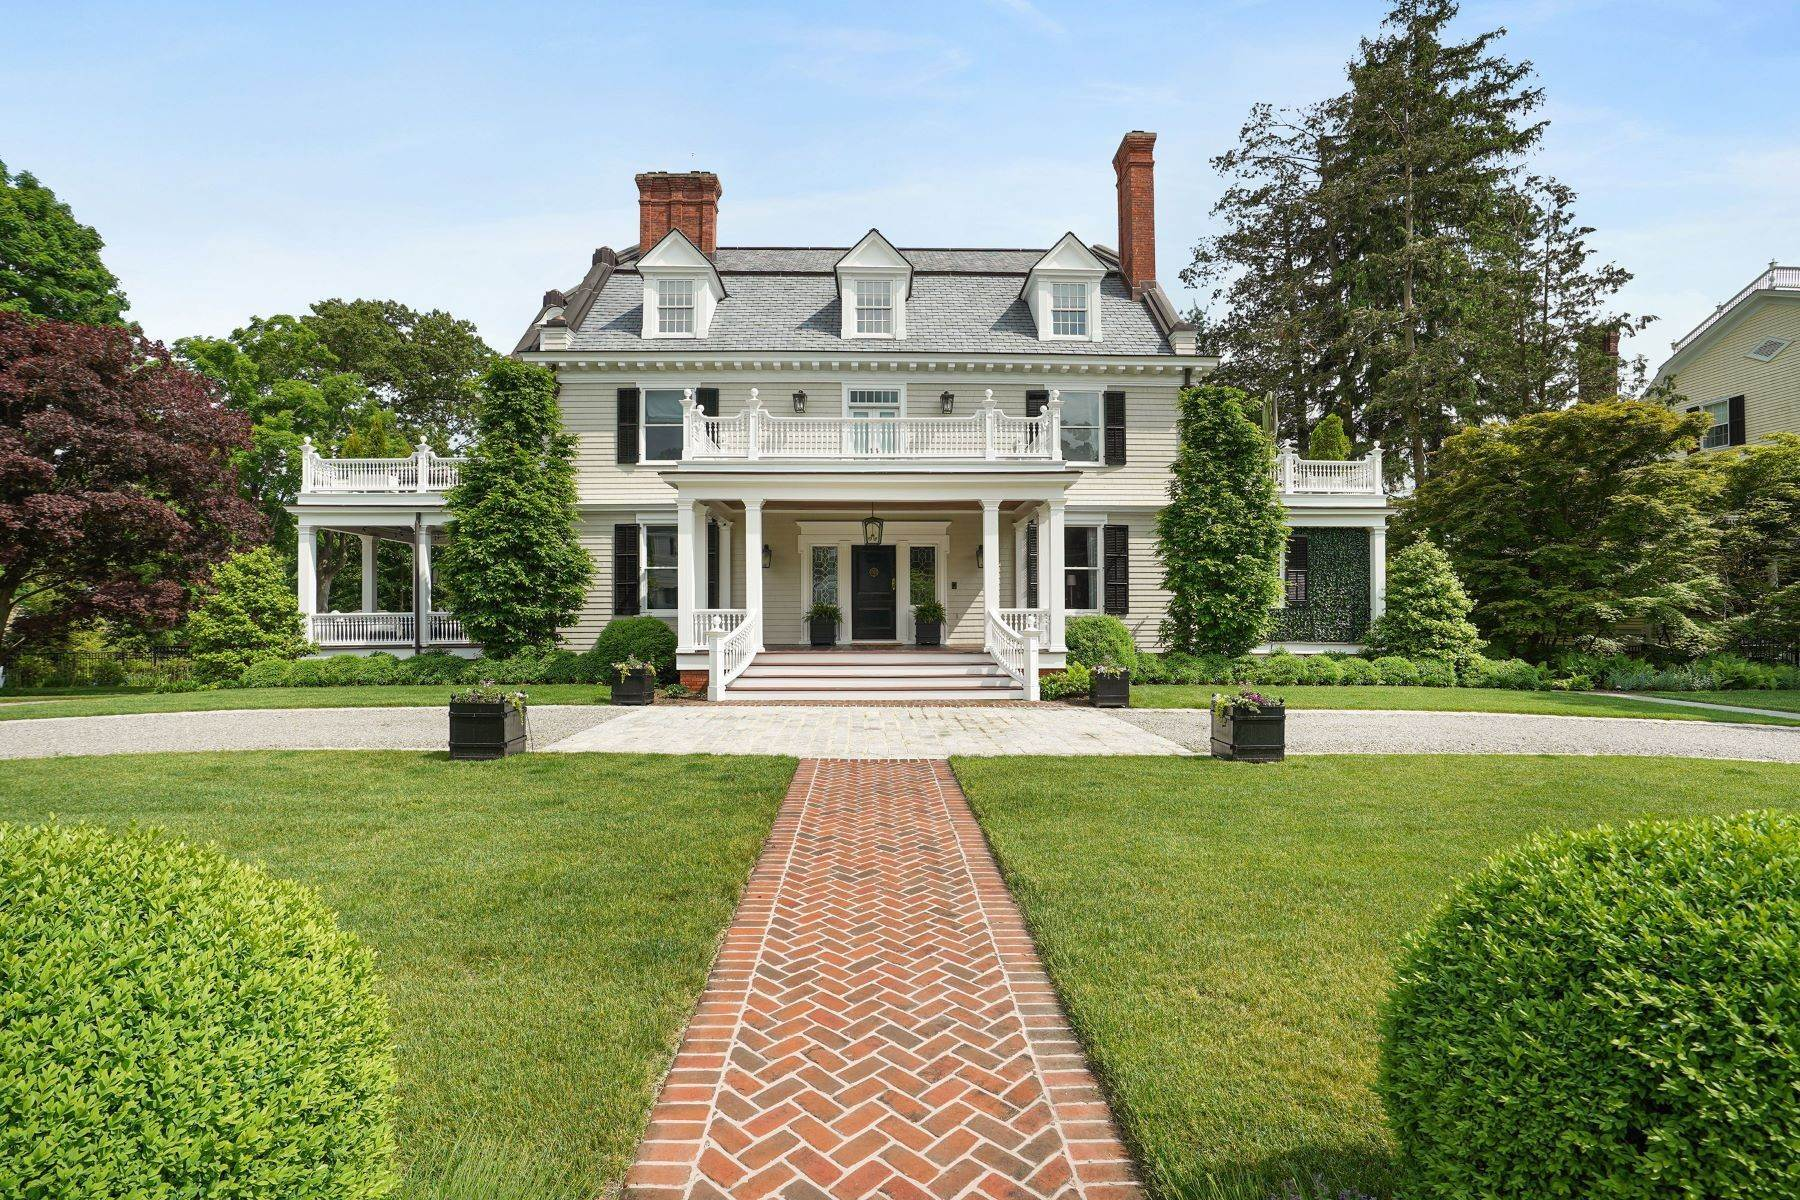 Single Family Homes for Sale at A Journey Into A Sophisticated Lifestyle 76 Miller Road, Morristown, New Jersey 07960 United States